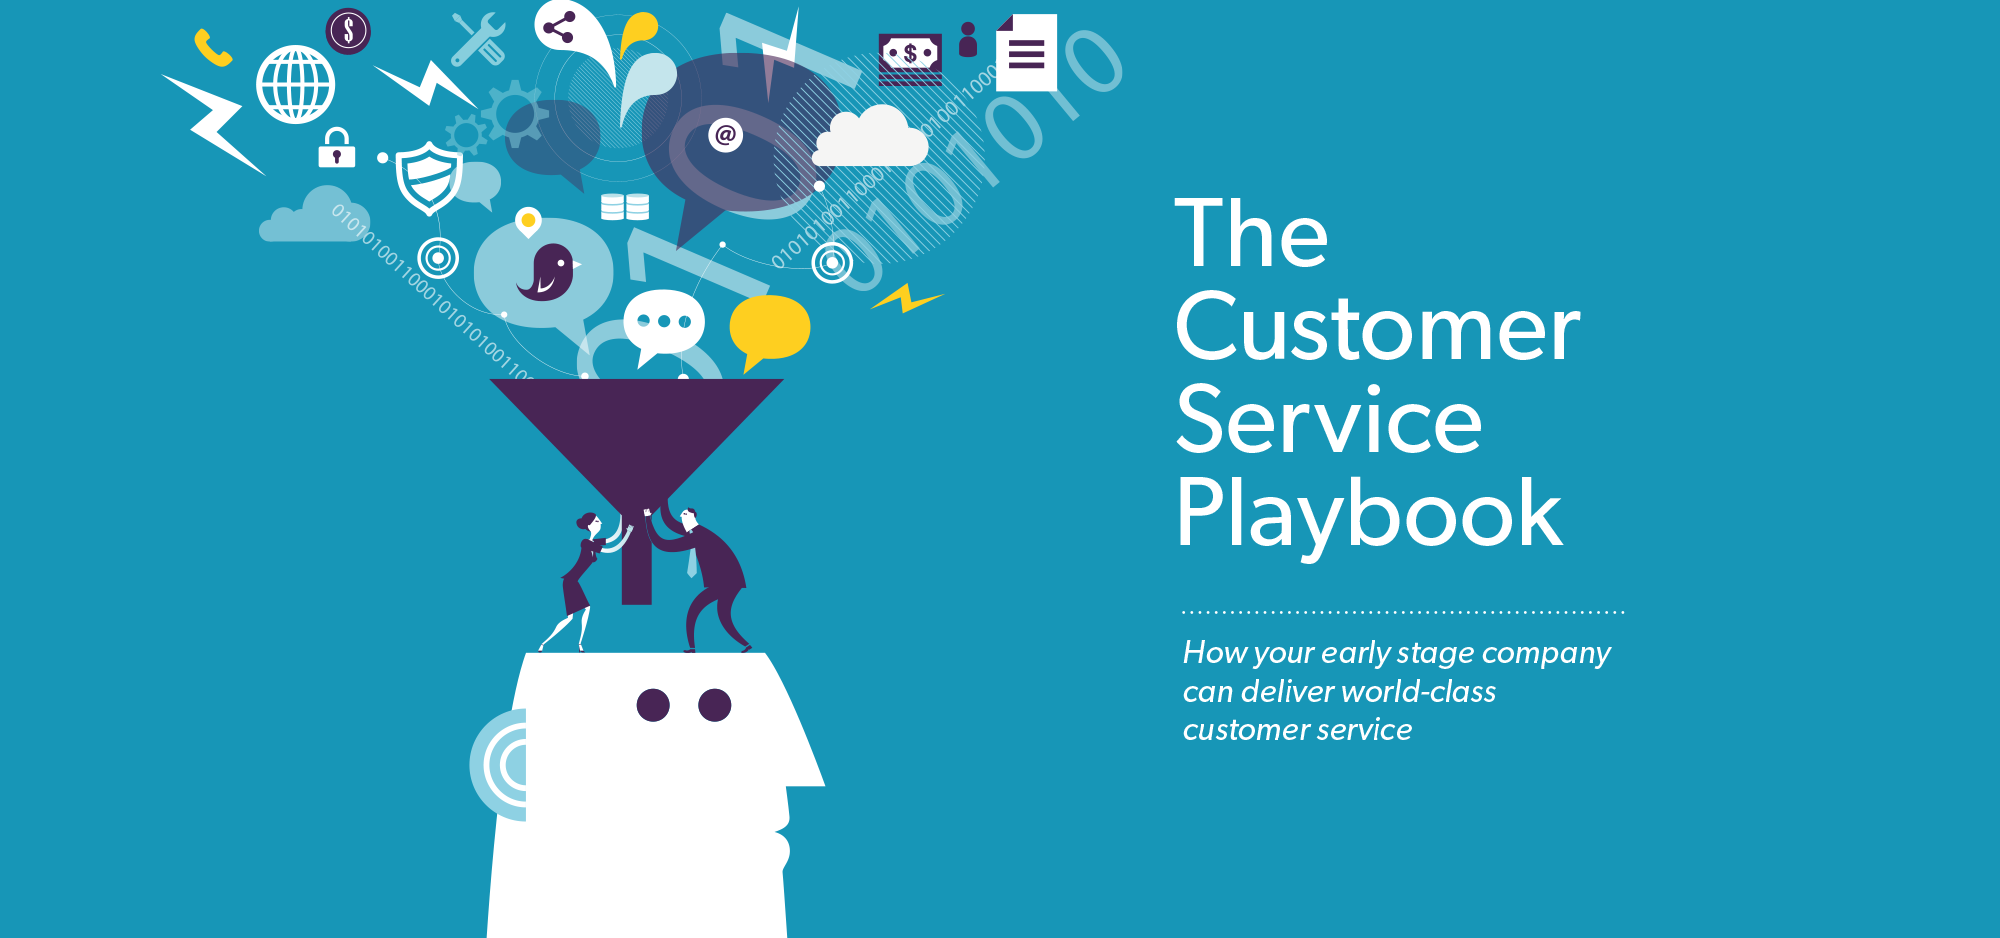 The Customer Service Playbook main banner